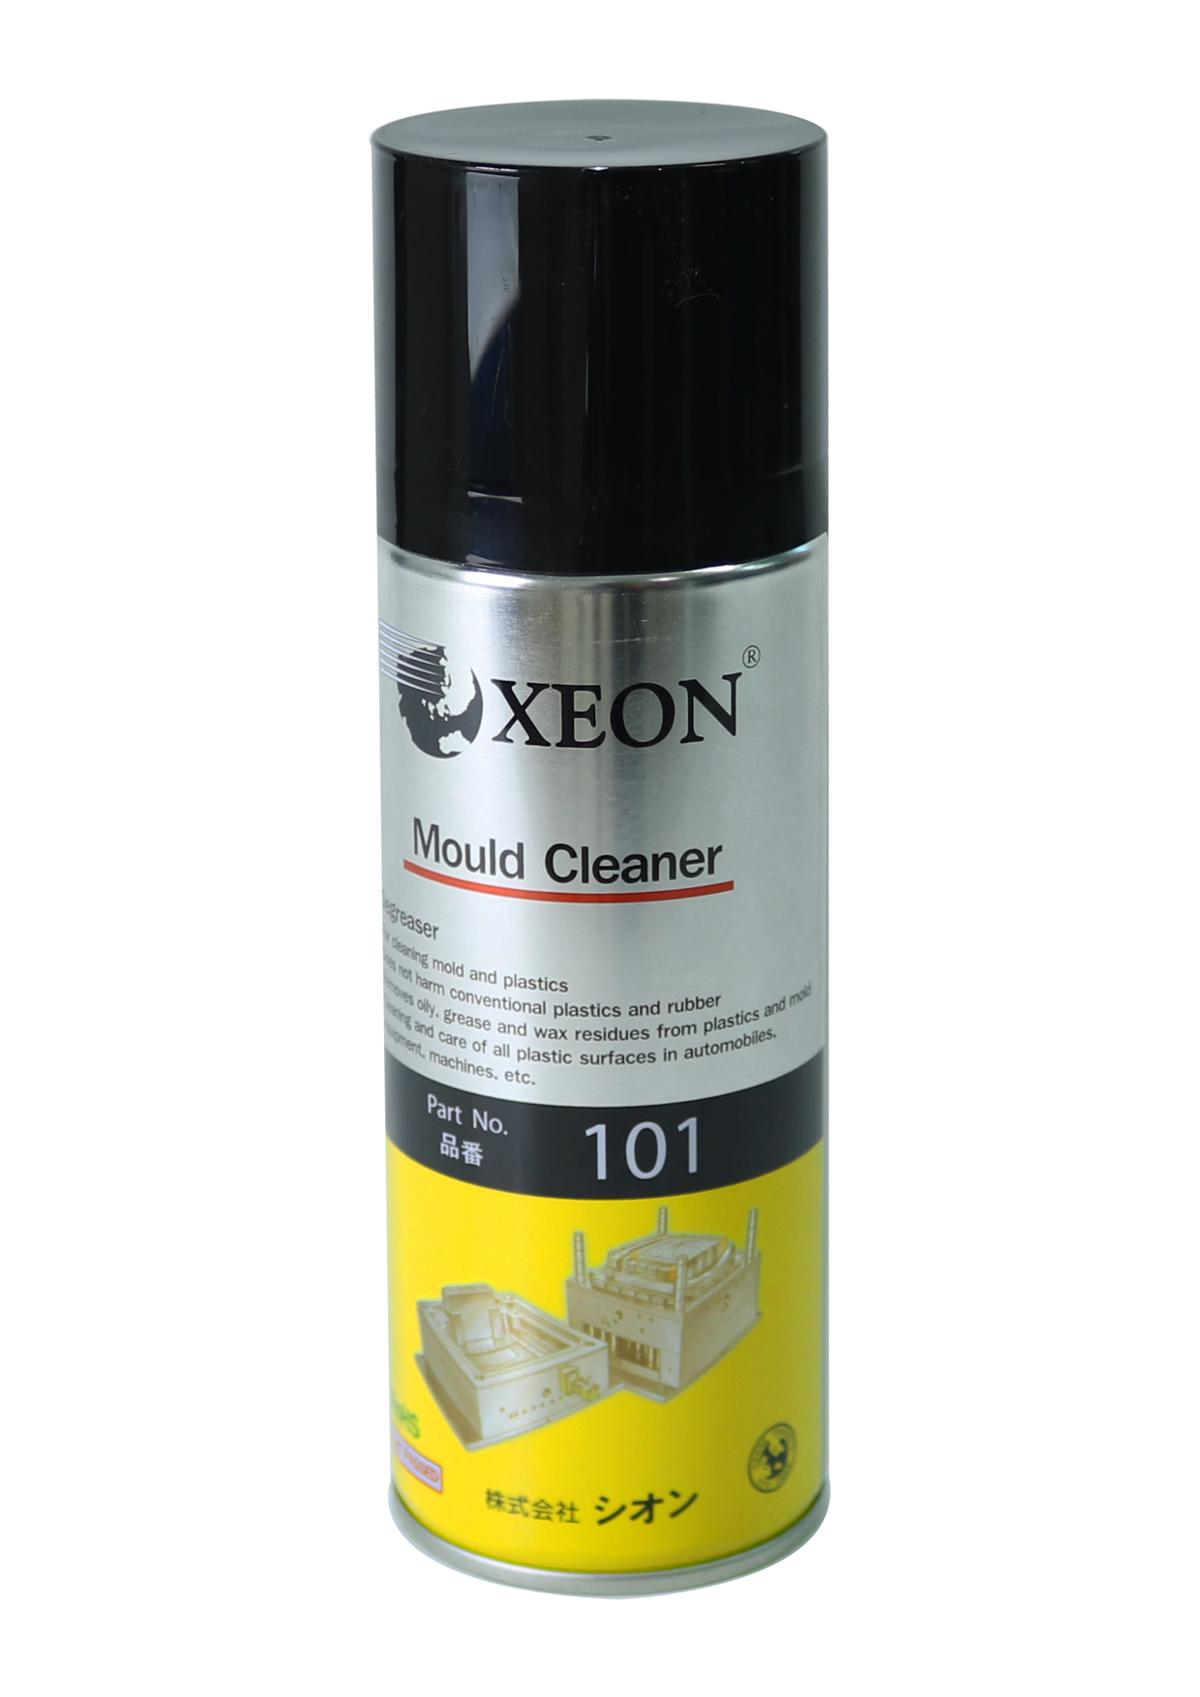 XEON 101 Mould Cleaner